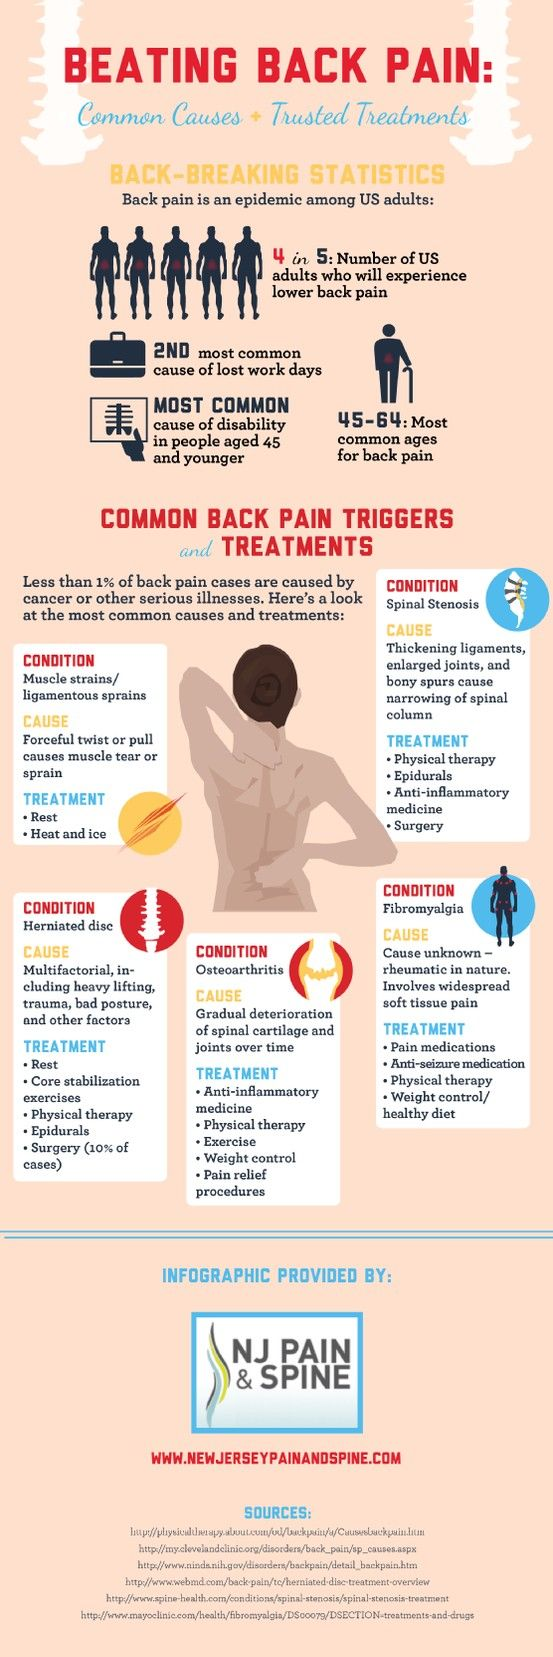 Cancer and other serious illnesses may cause back pain, but these conditions are responsible for less than 1% of back pain cases. Read about some of the more common causes of back pain on this New Jersey pain management infographic.